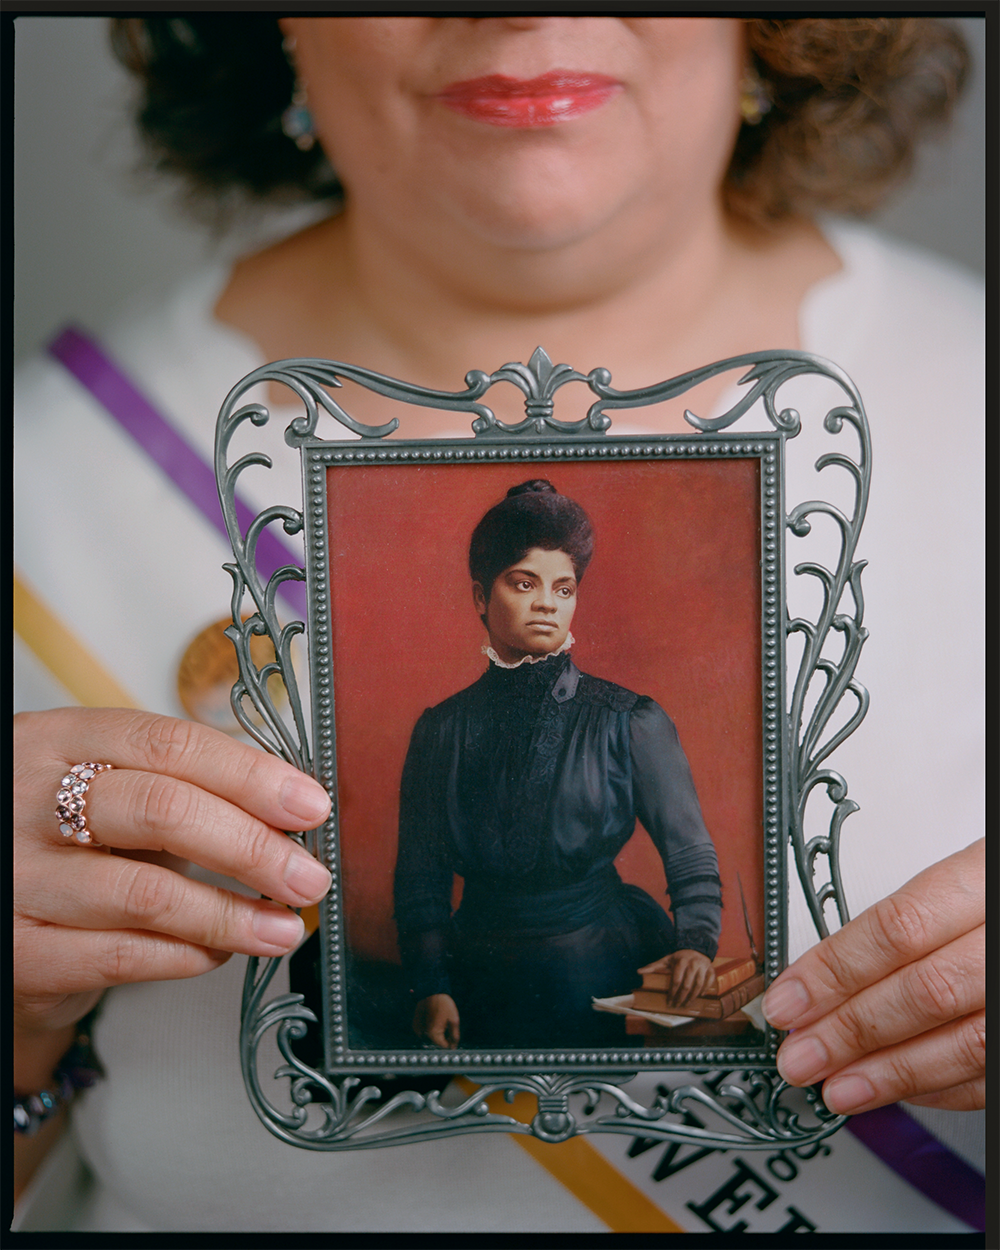 Celeste Sloman Photographs Women's Suffrage Feature for National Geographic